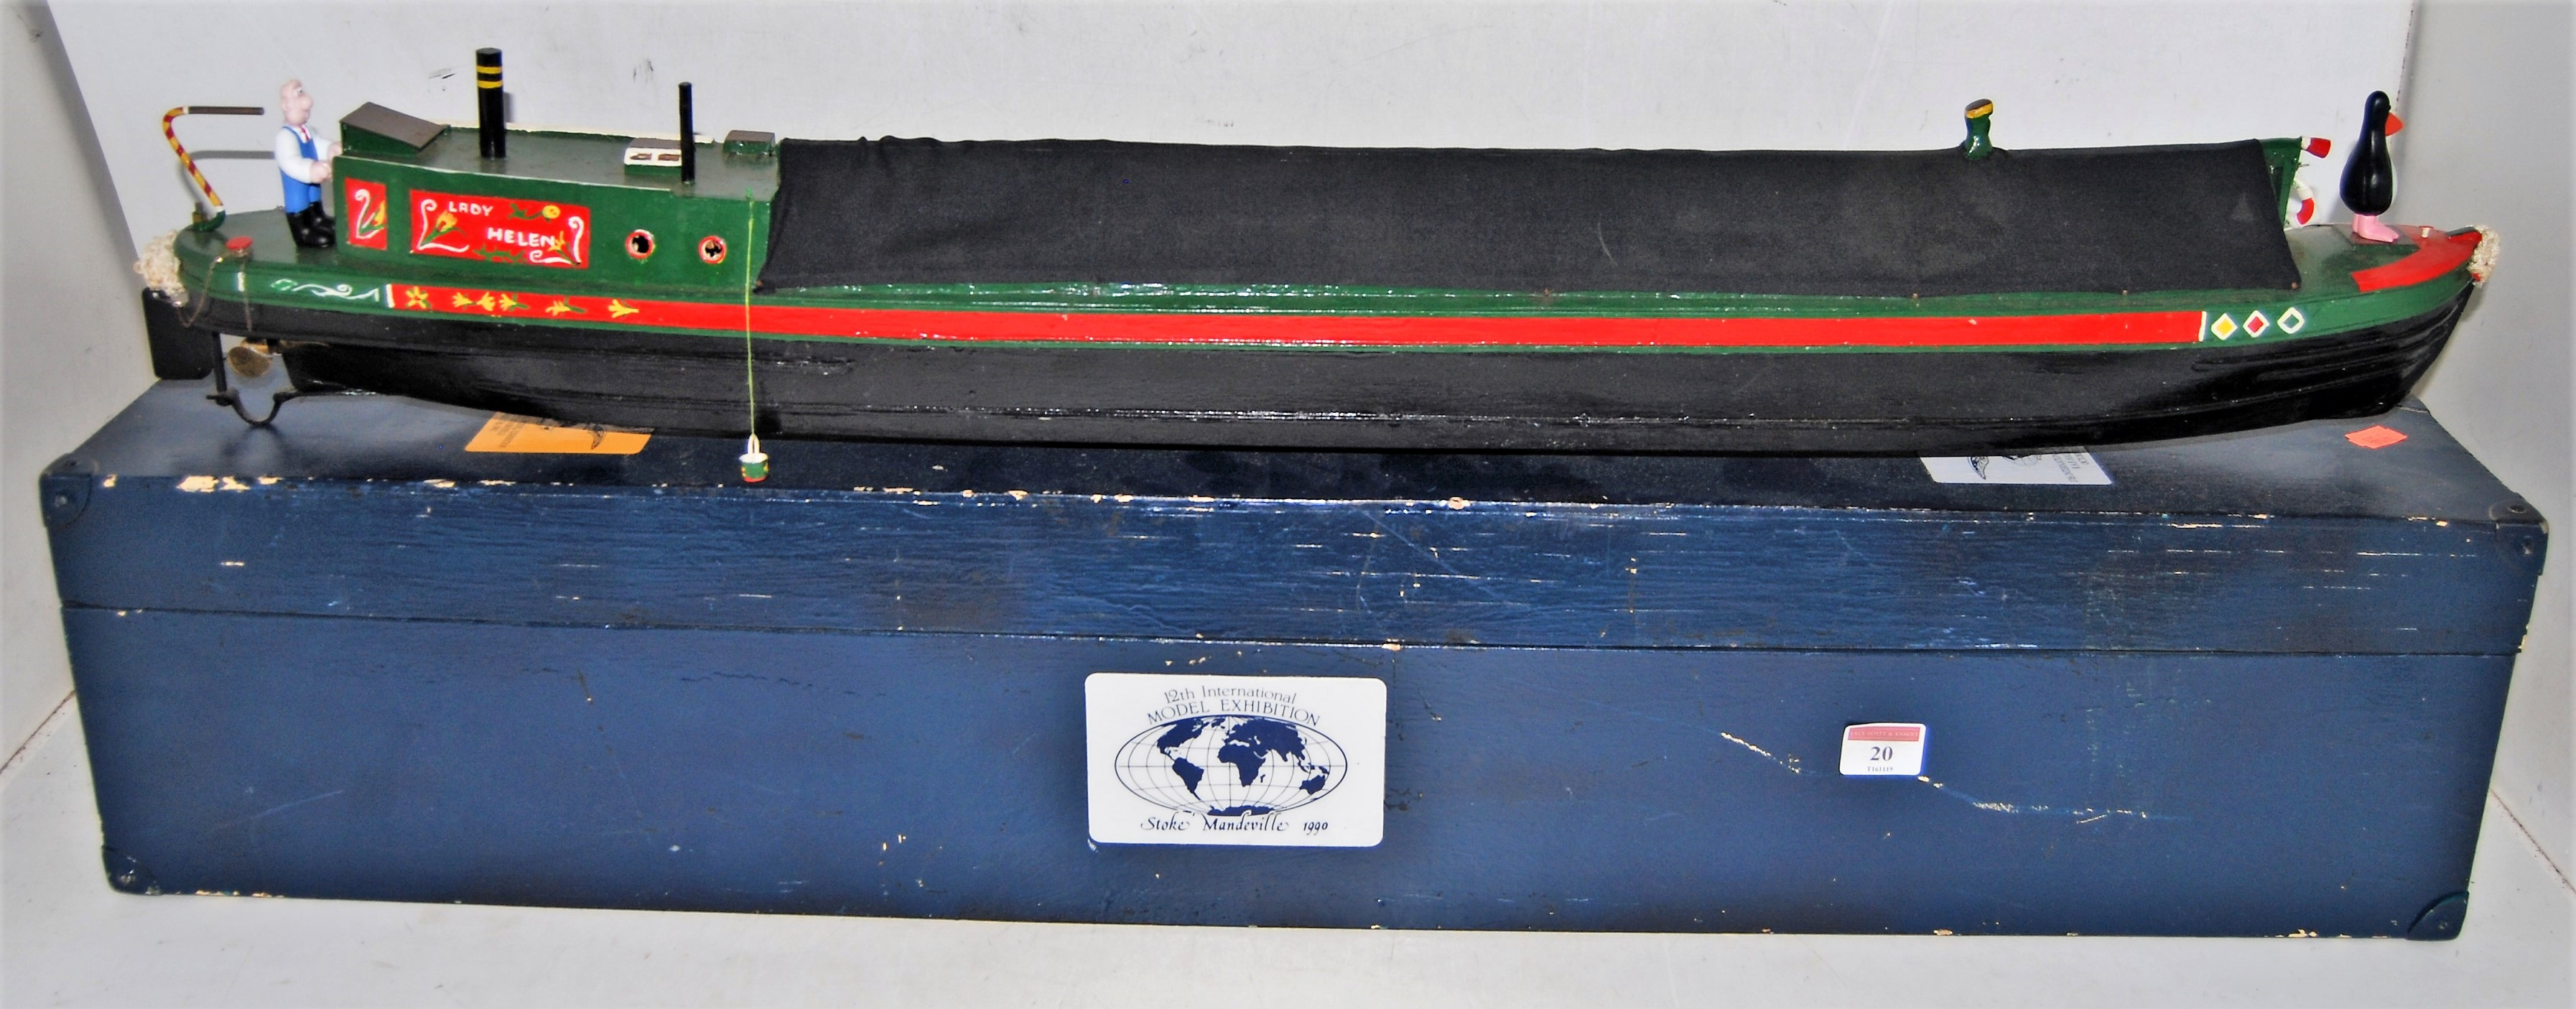 "Lot 20 - A wooden scratchbuilt model river longboat named ""Lady Helen"" finished in black, red and green, with"